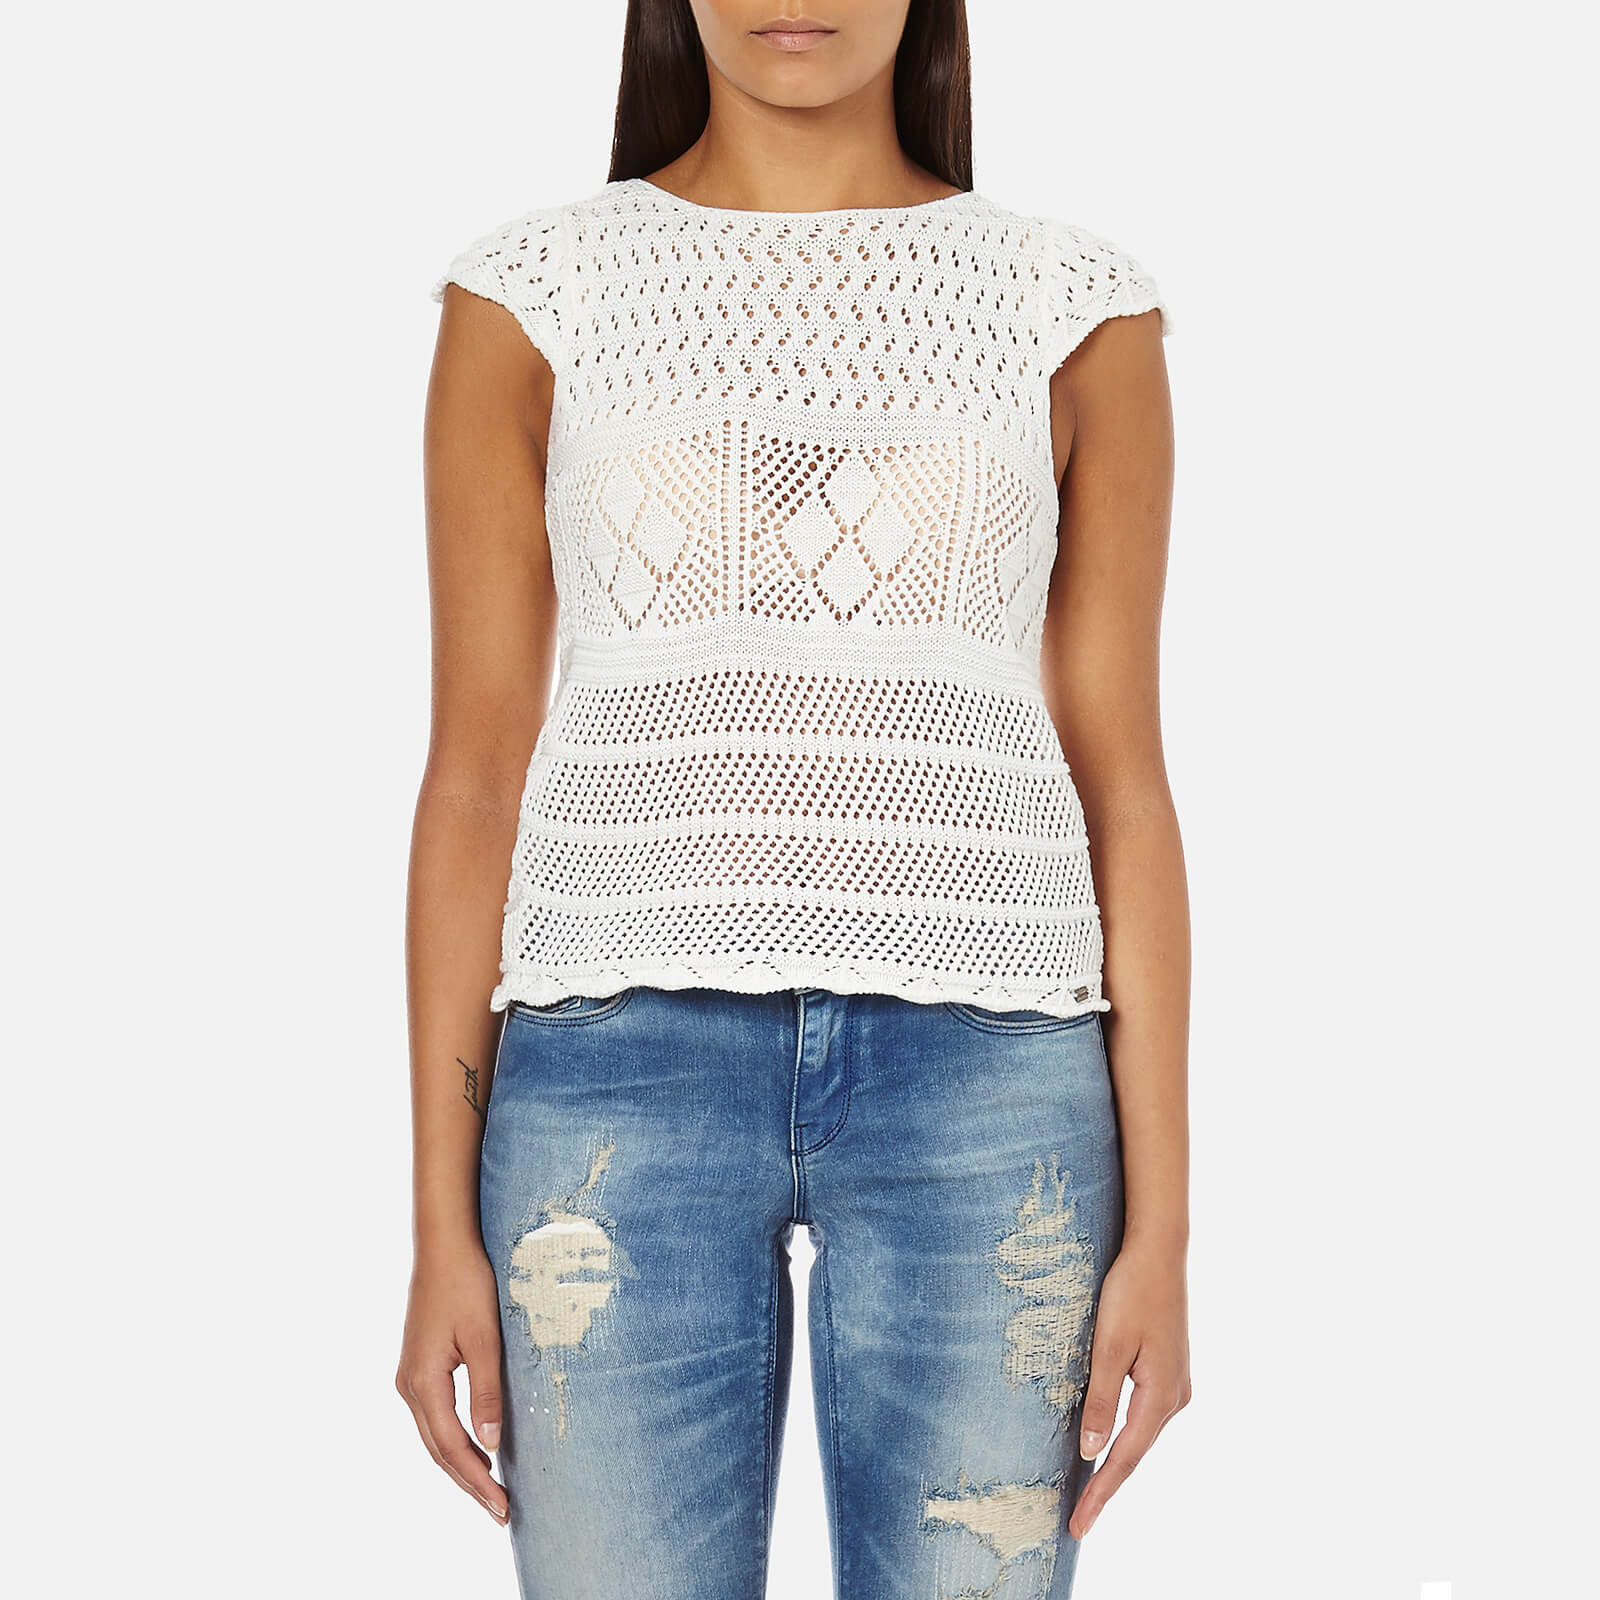 2ab51354 Superdry Women's Alexis Crochet Knitted Top - Off White Womens Clothing |  TheHut.com